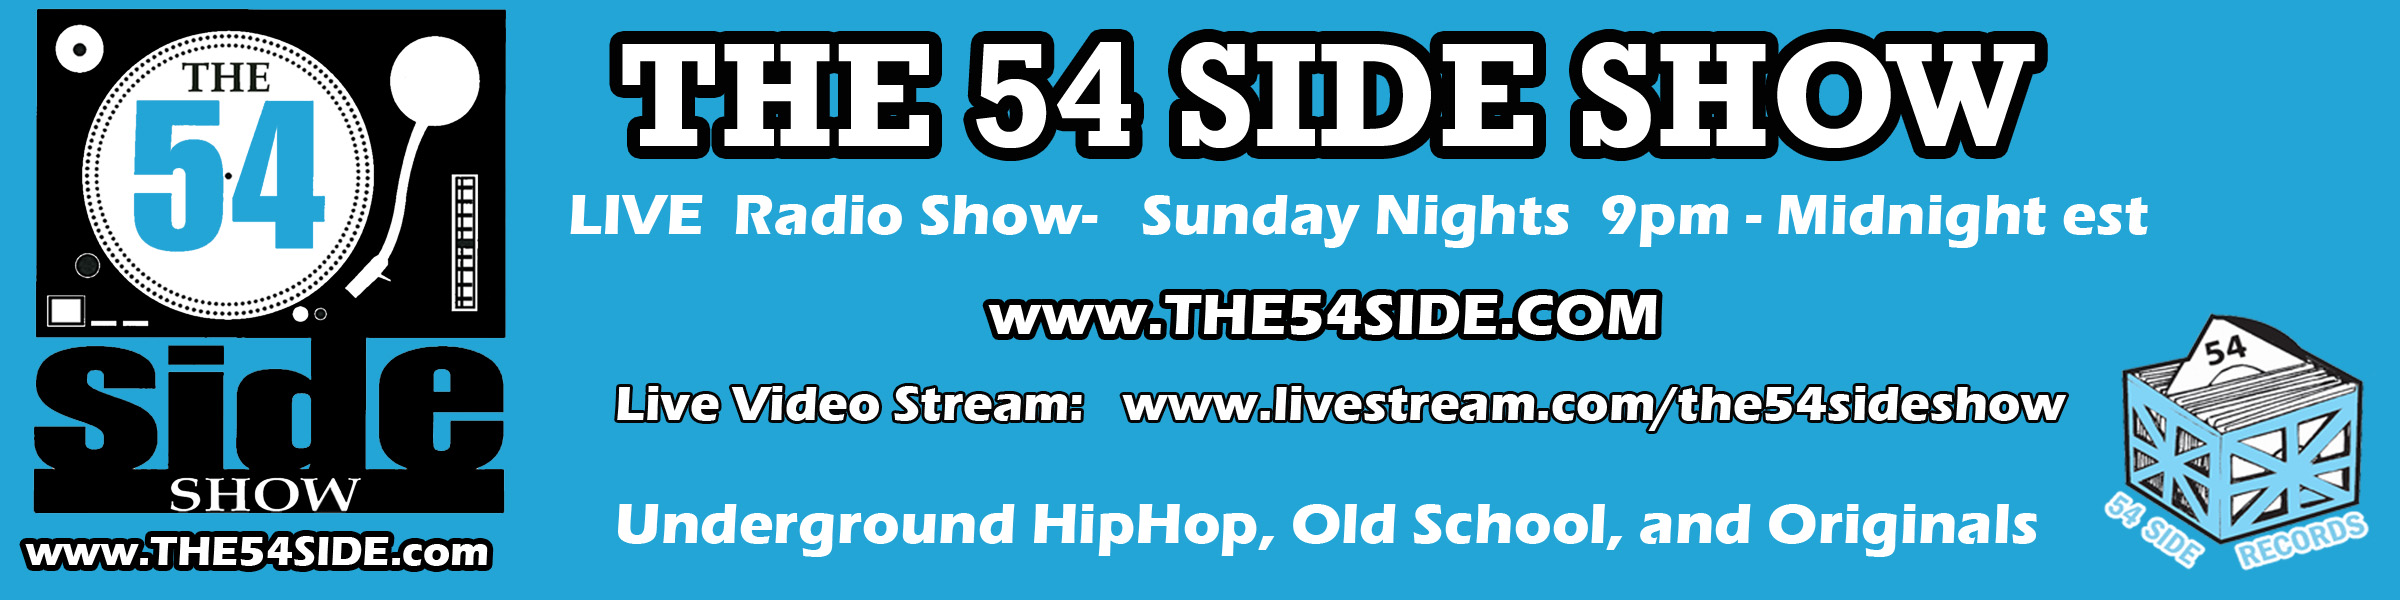 The 54 Side Show